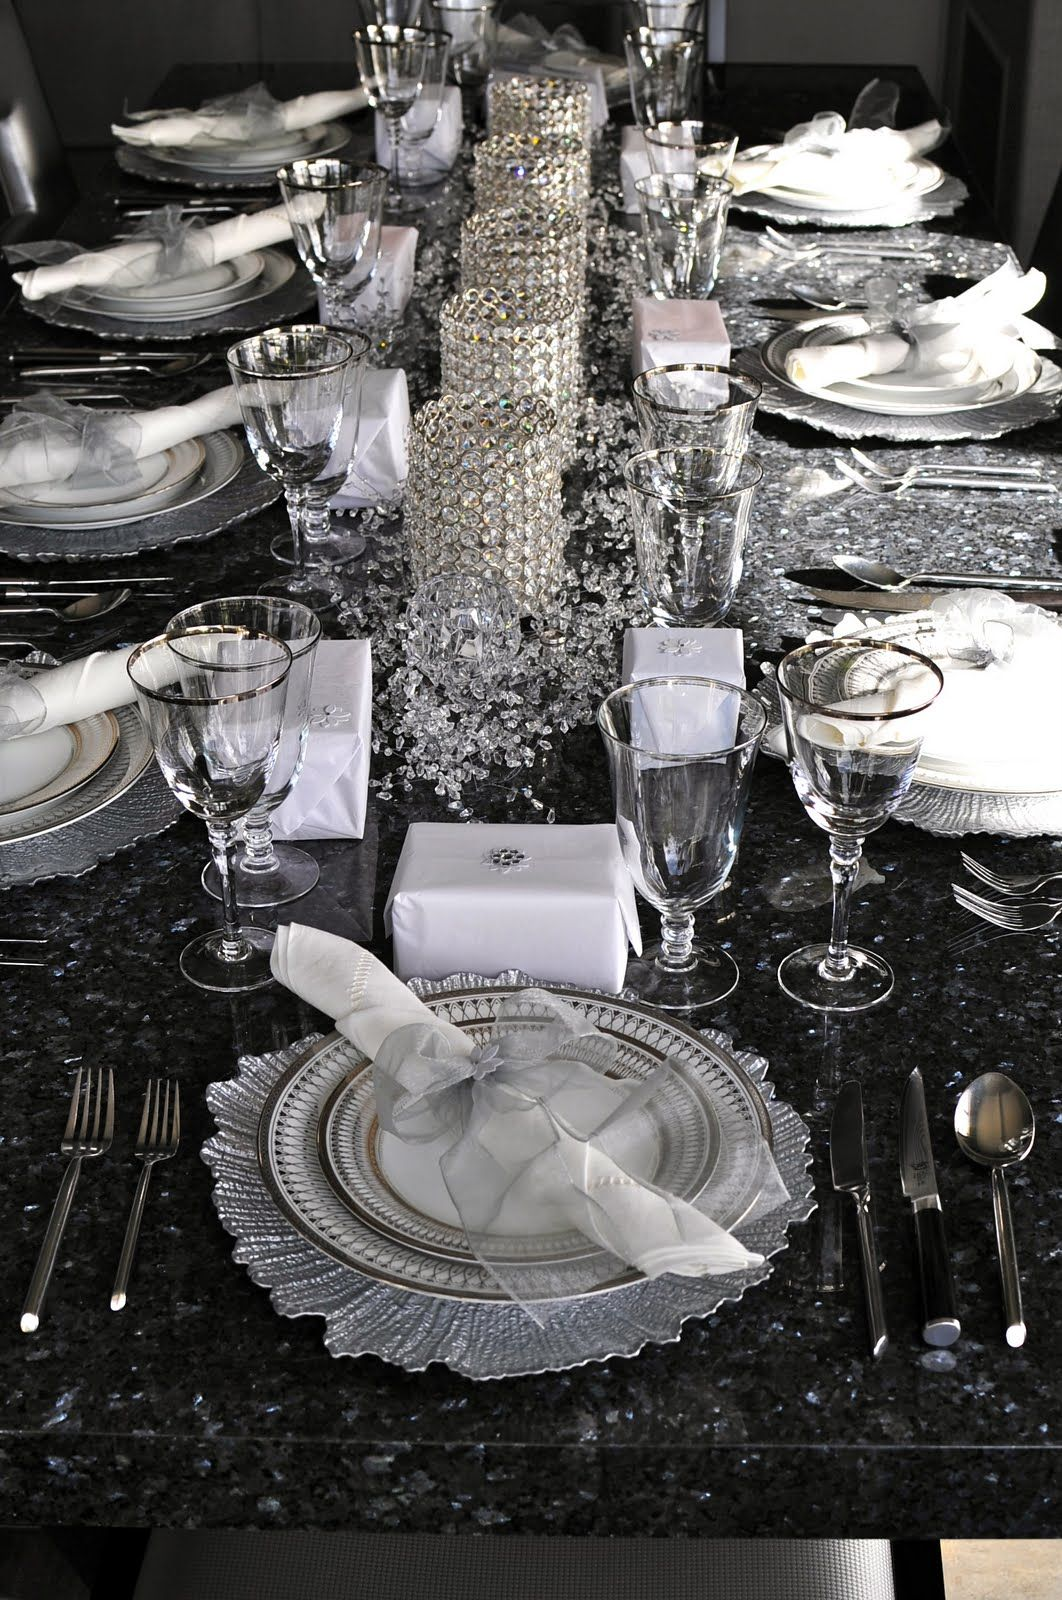 Crystal and Platinum New Year\u0027s Eve table setting. & On prépare le nouvel an couleur argent ! | Crystals Table settings ...